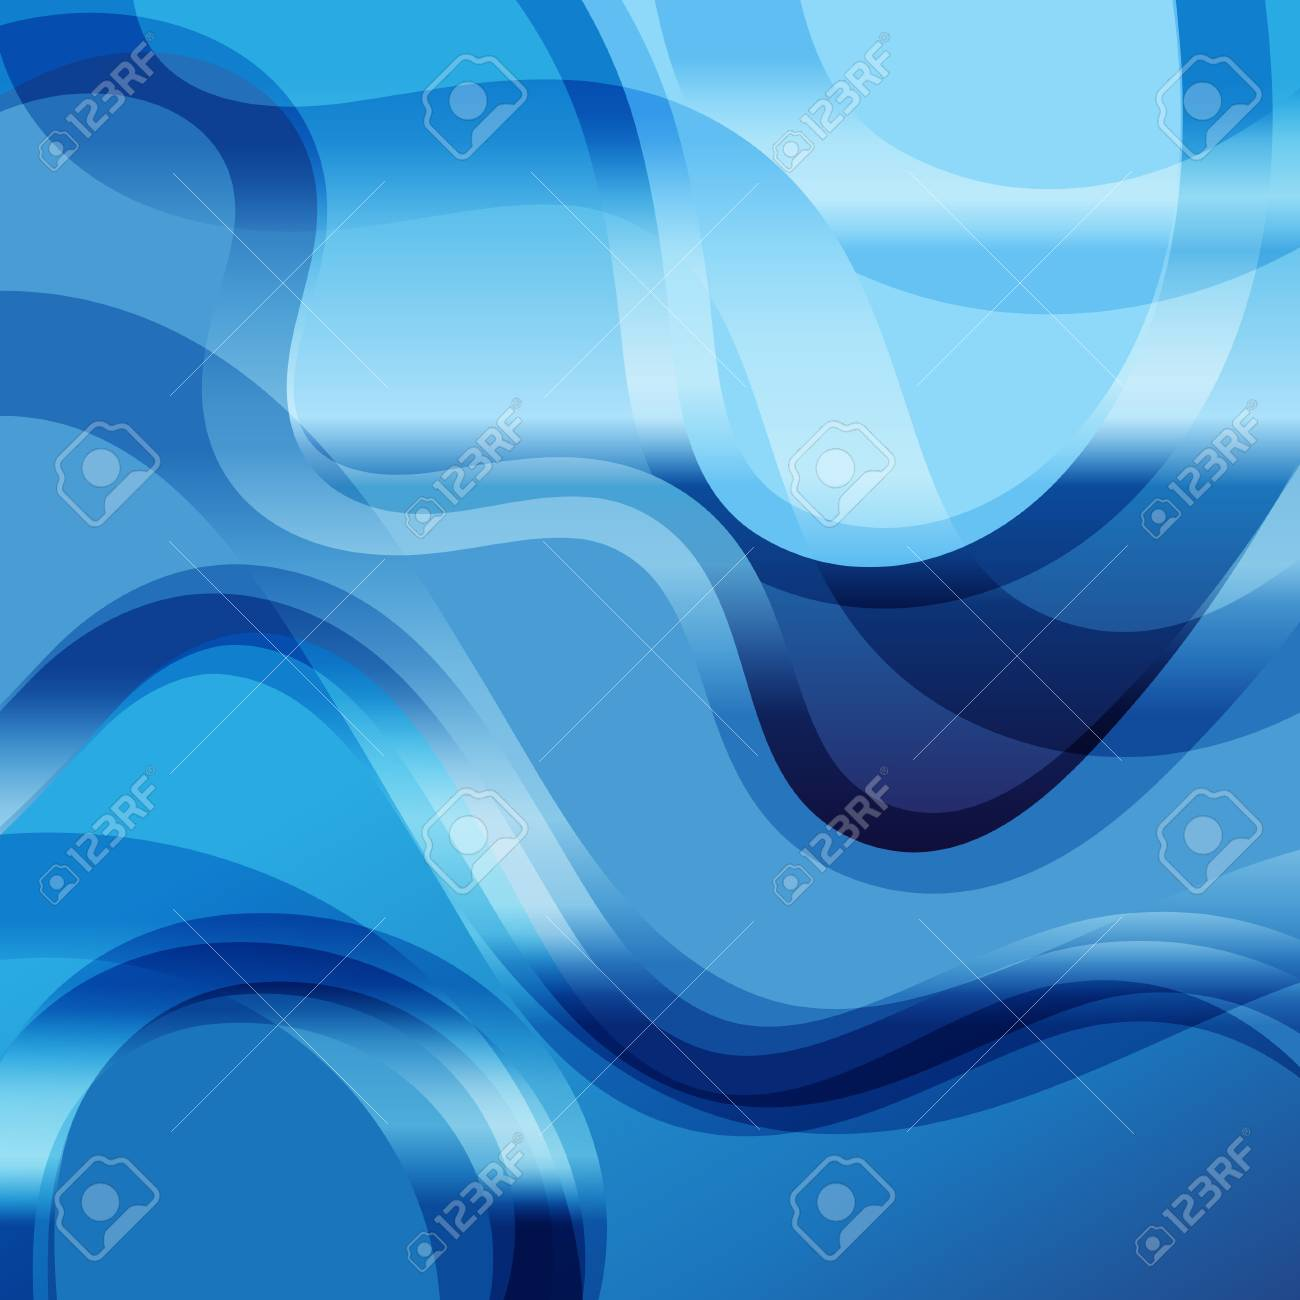 Bright background design blue transparent abstract wave blue - 126082001